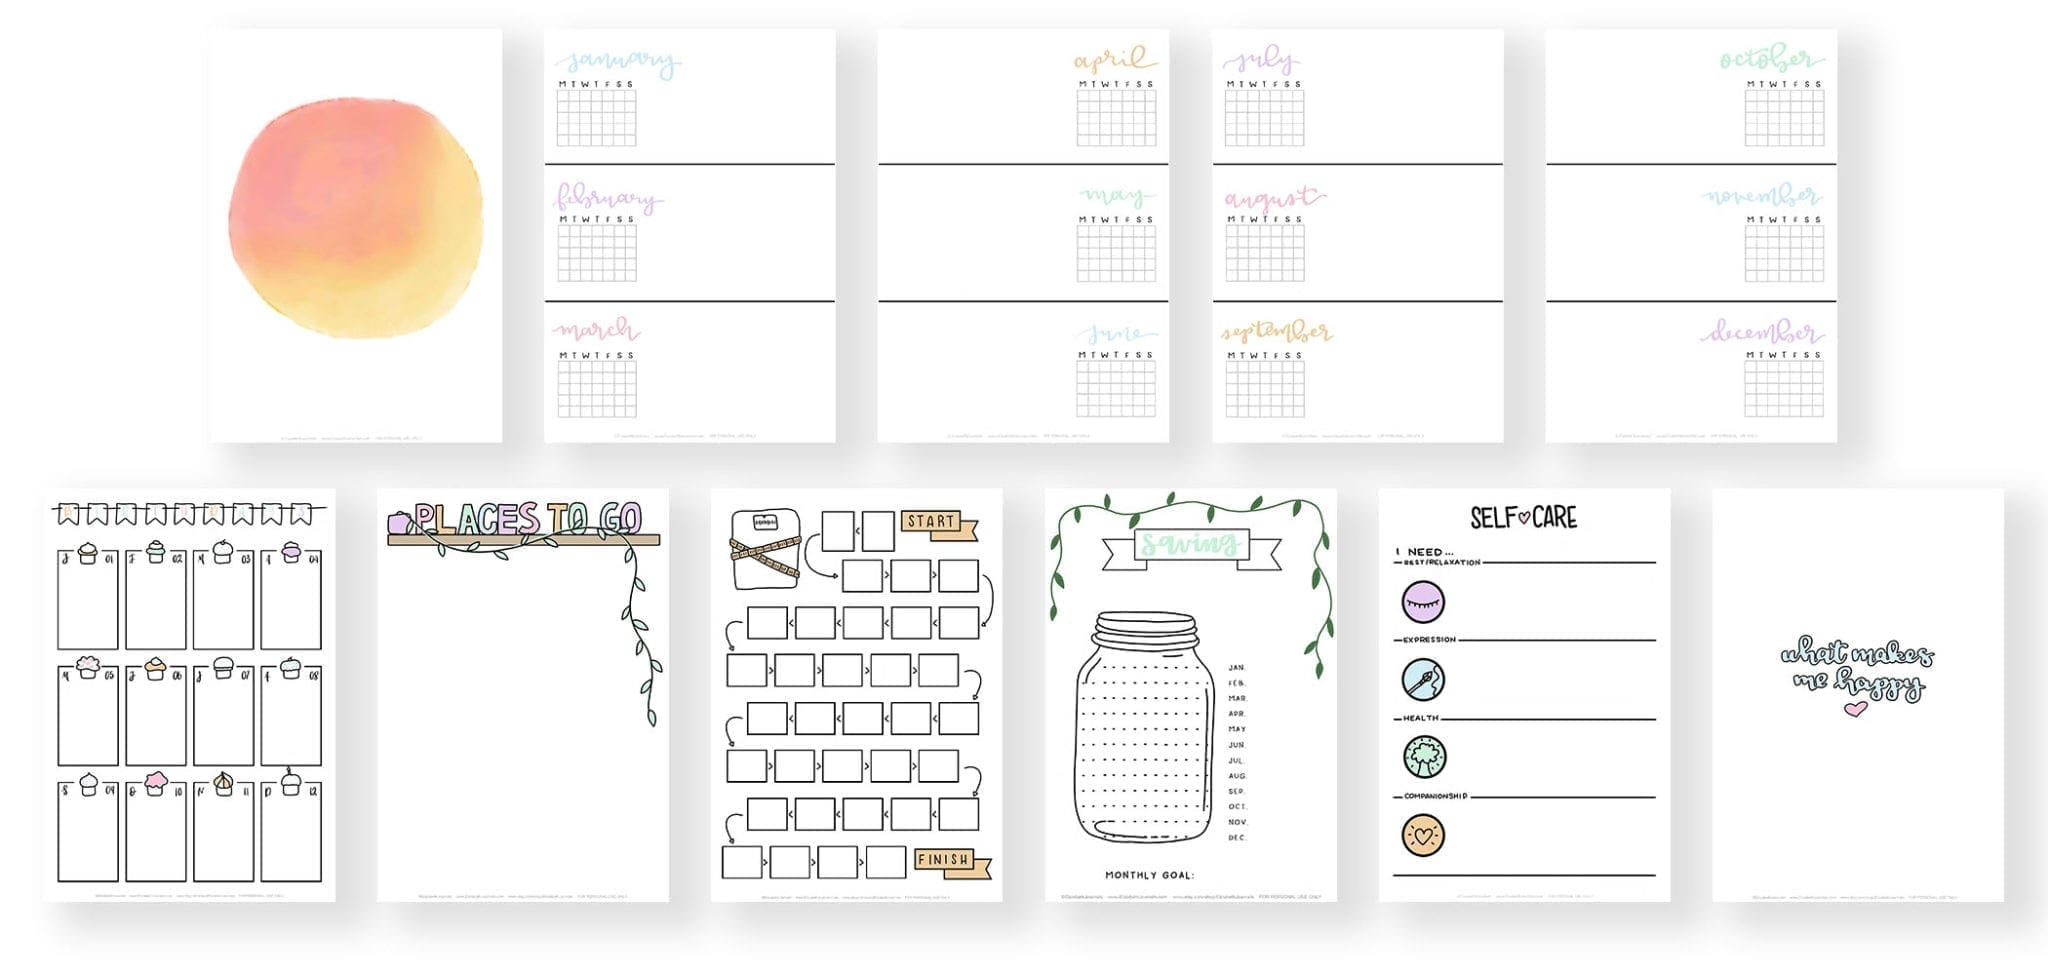 banner 2-blank cover-future log-birthday log-places to go list-weight journey tracker-savings jar tracker-self-care menu-quote